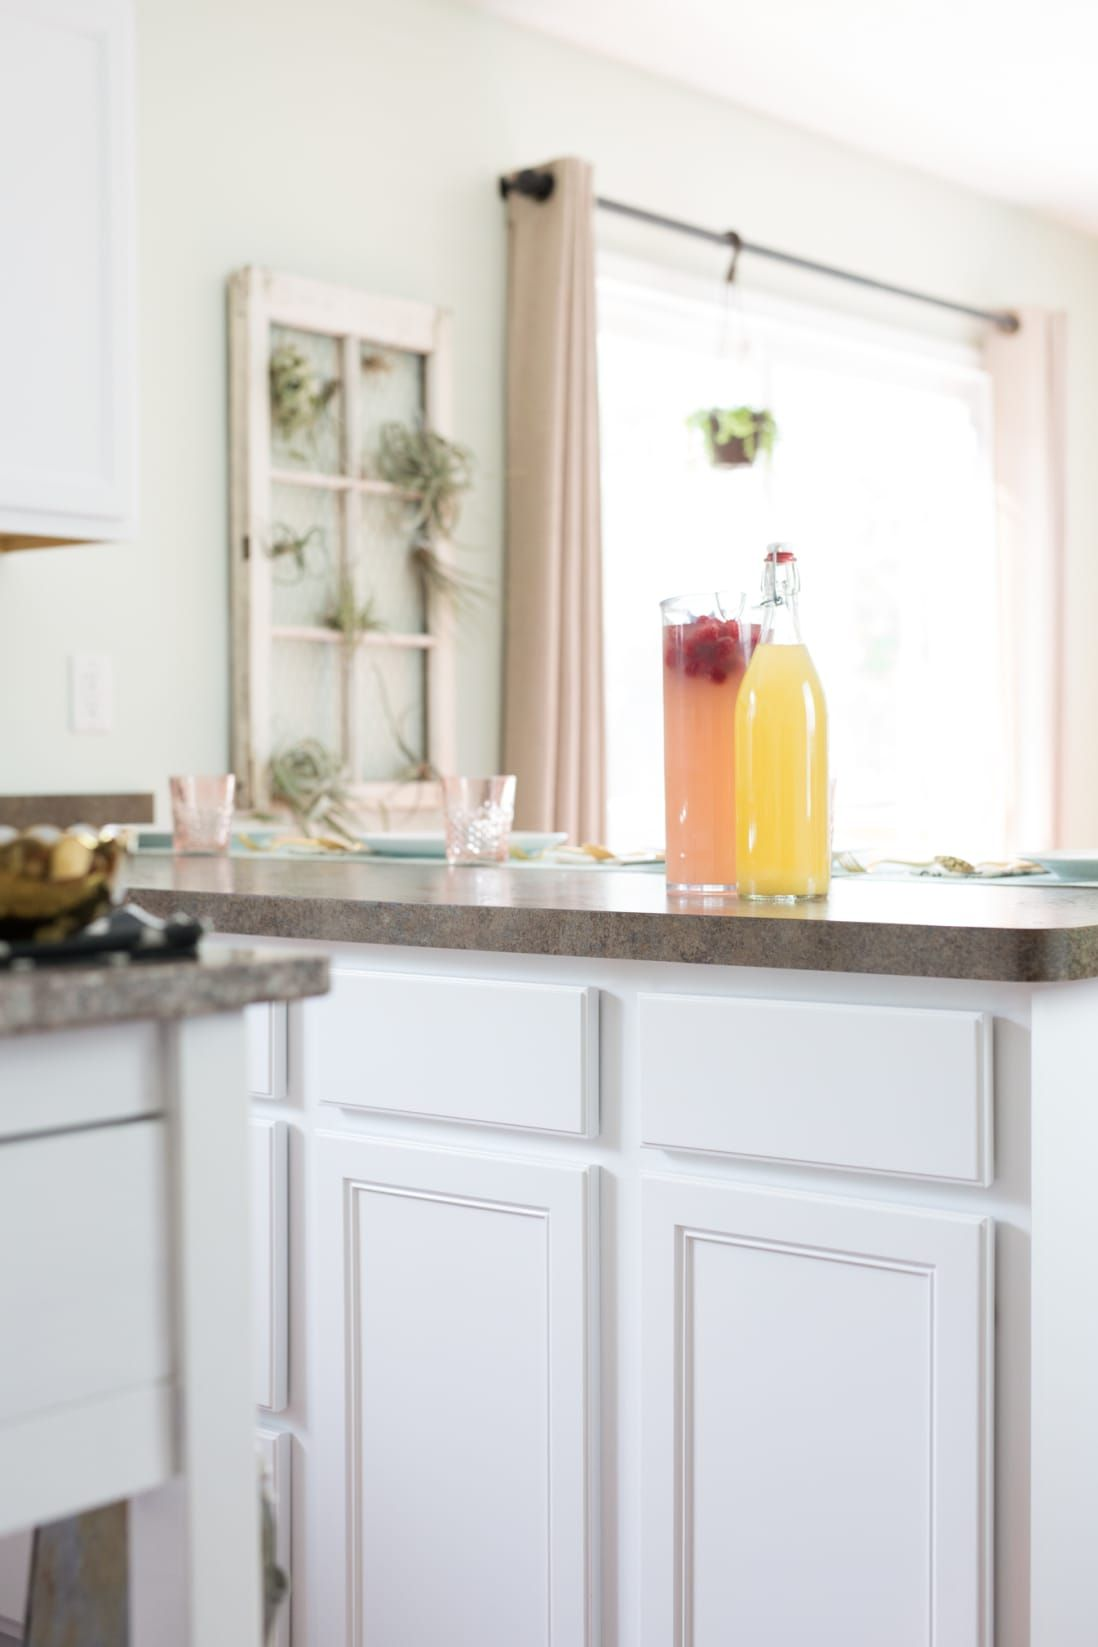 How To Clean Painted Wood Cabinets In 2020 Clean Kitchen Cabinets Wood Kitchen Kitchen Cabinets